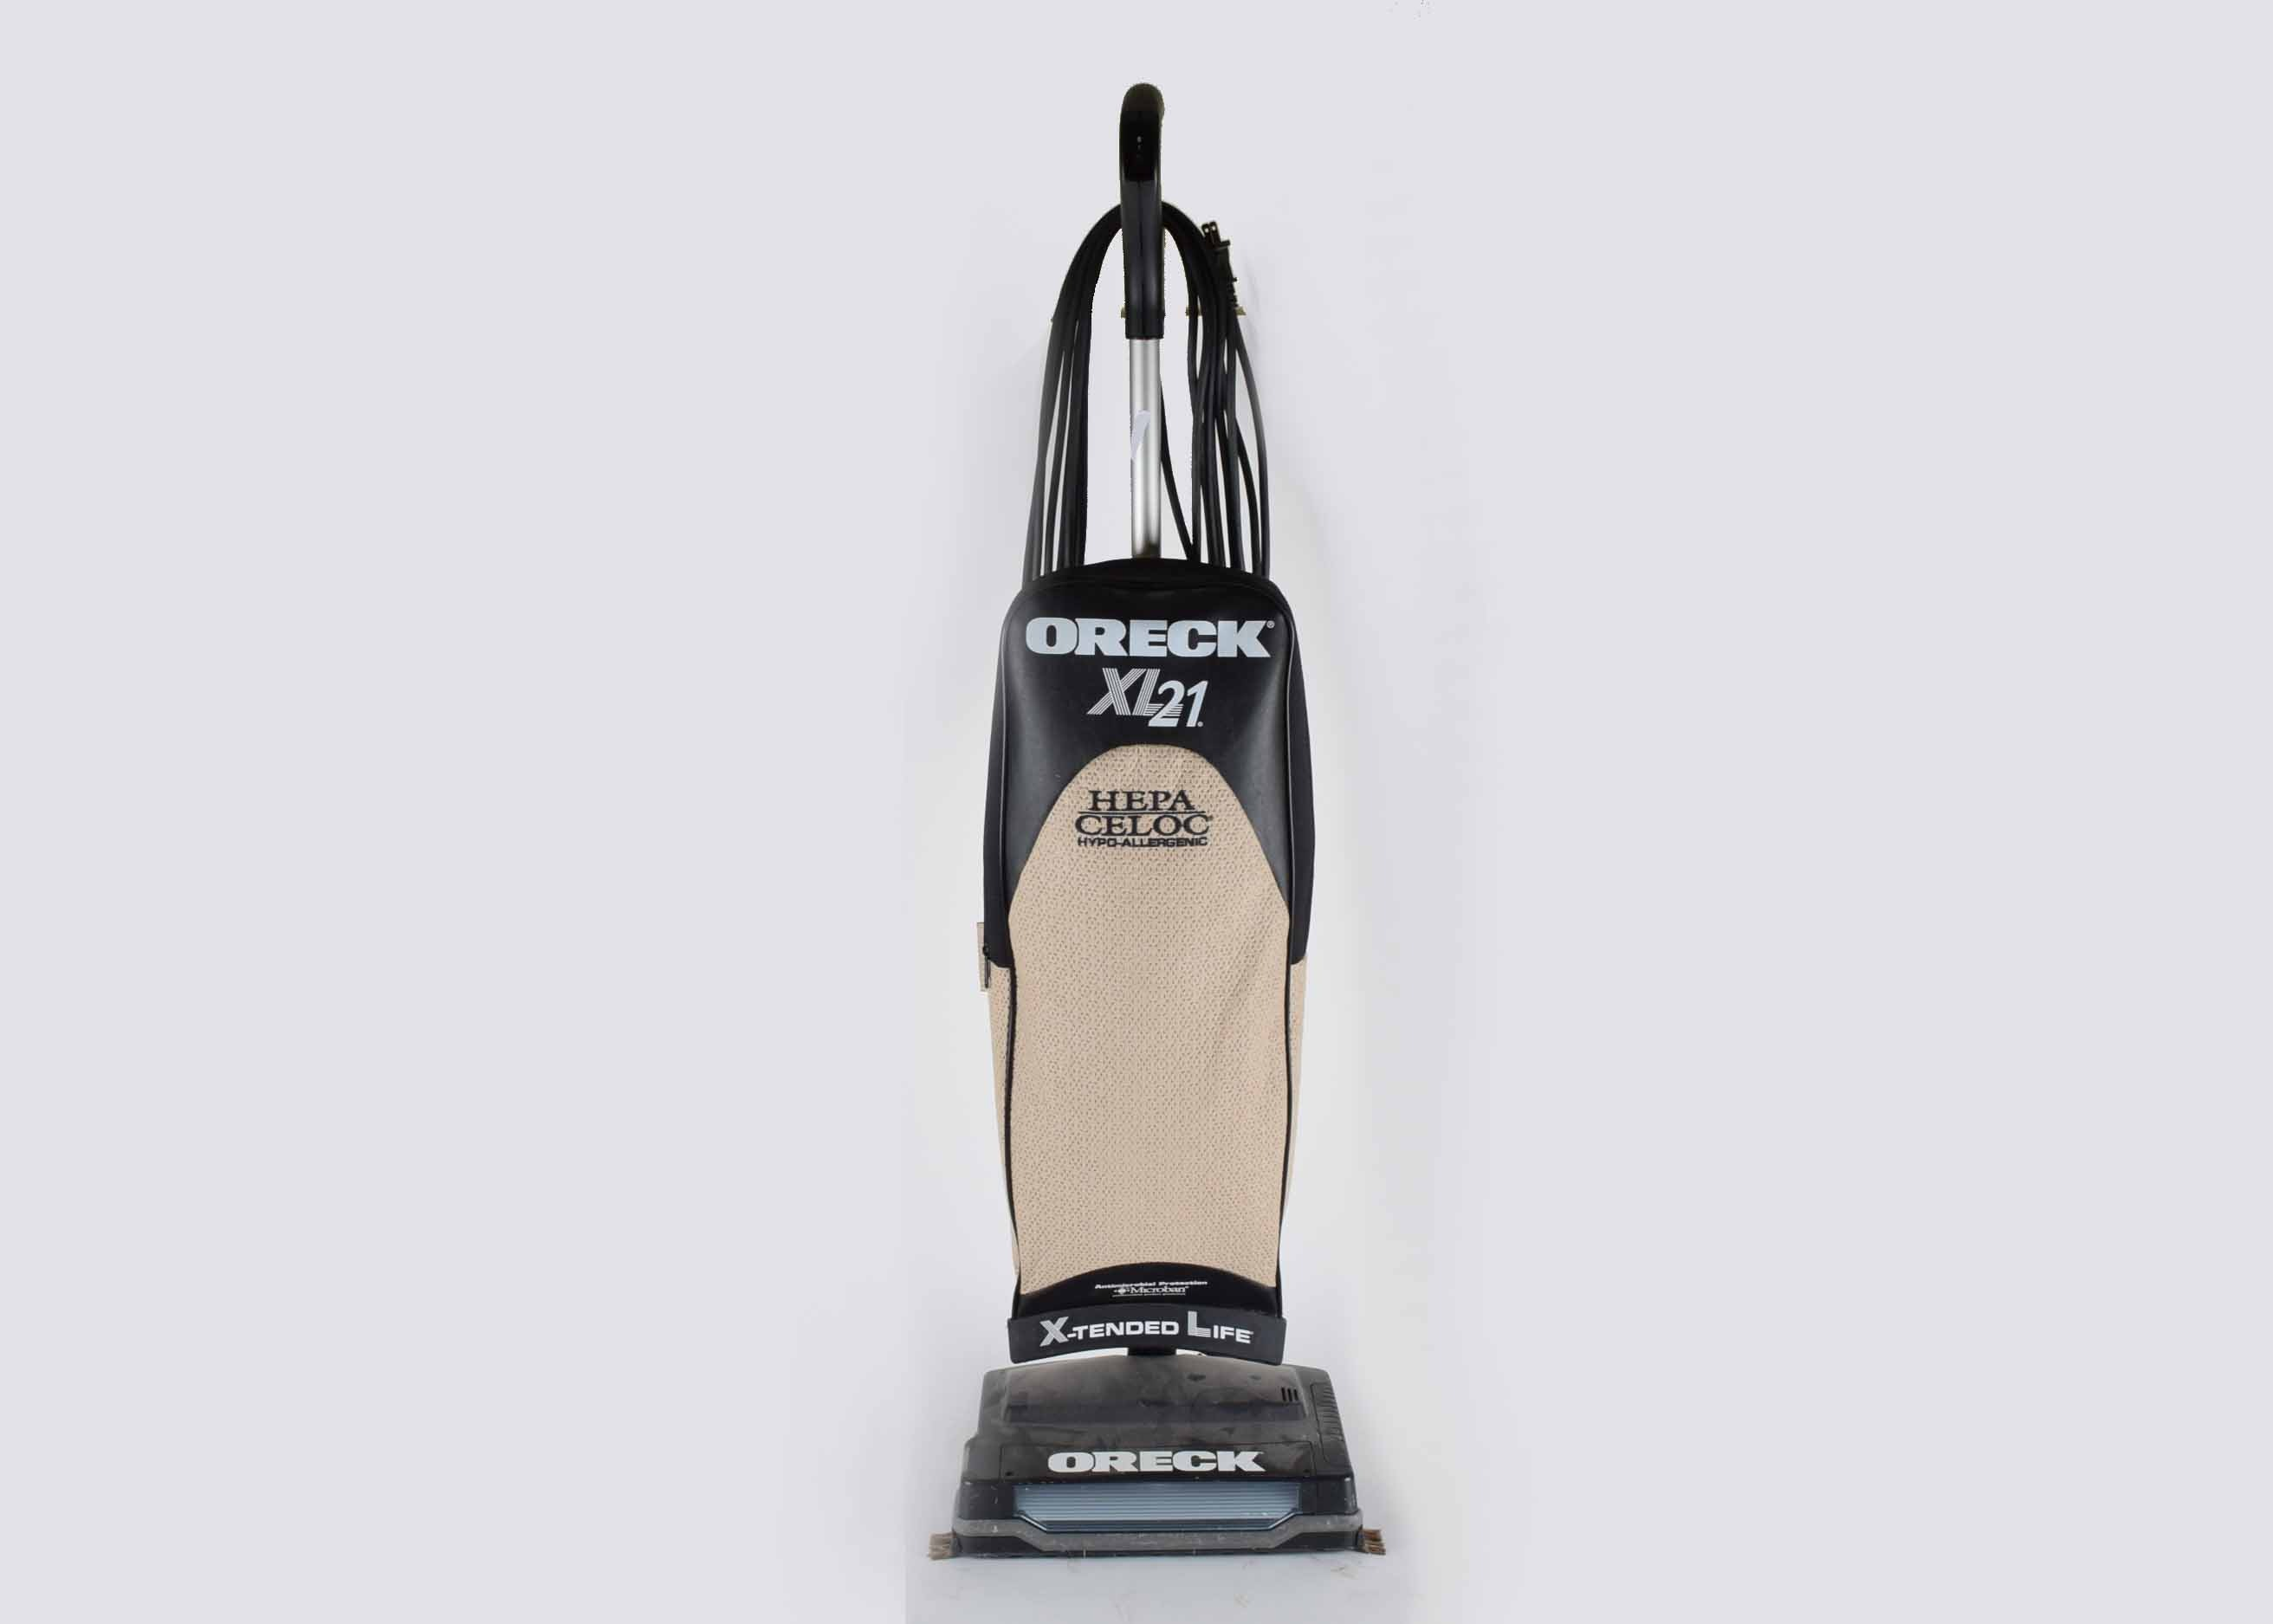 Oreck Commercial floor machines provide professional results in an easy-to-use design. Whether you need to polish hard floors or deep clean carpets, our versatile products offer everything you need to get the job done without hiring outside help.